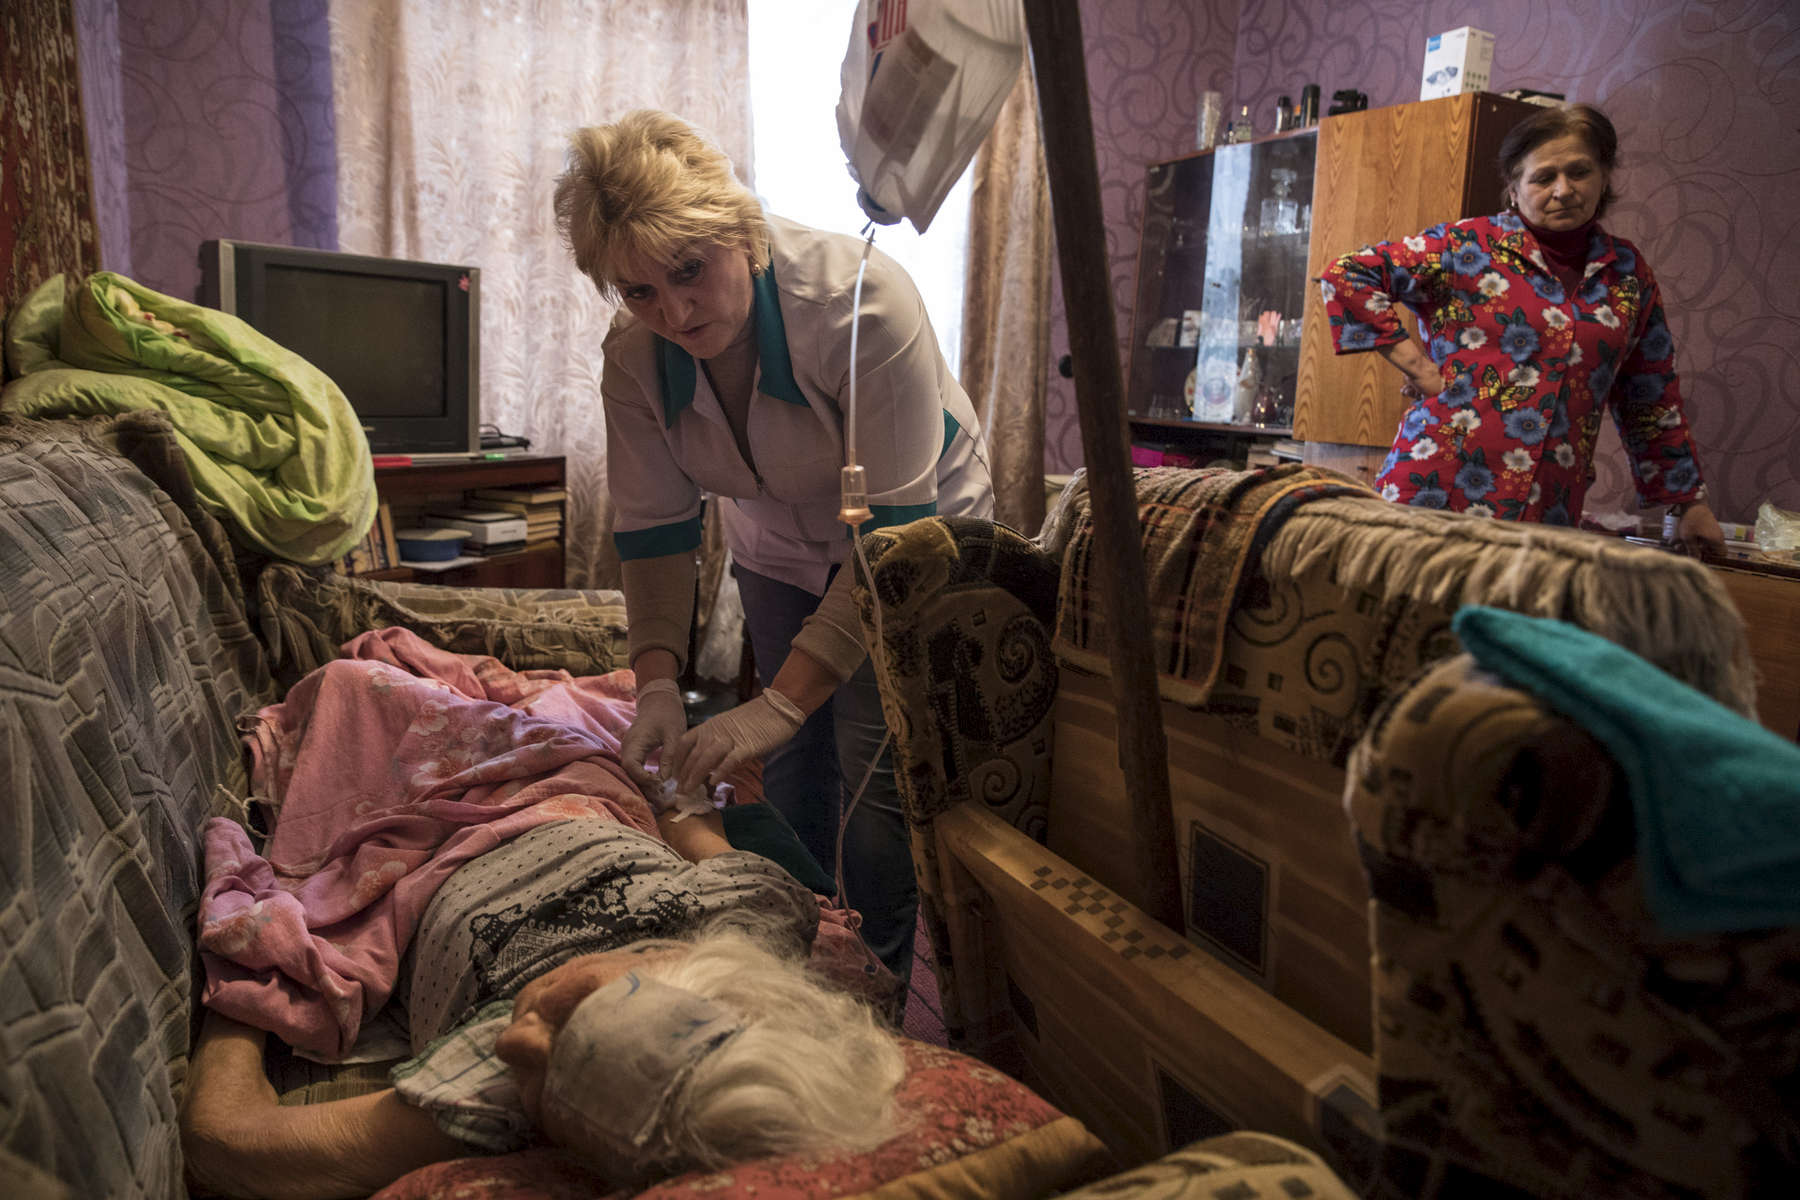 Mayorsk, Donetsk regionAntonina Malna, age 84, gets cared for by a local nurse, she had a stroke a few months ago and remains in a comatose state while her daughter Zoya watches. The nearest hospital is 25 km away and cannot afford to provide 24h care for patients like Antonina due to the lack of medical staff. Mayorsk is right on the border area in Eastern Ukraine, a very difficult location for the elderly to be unless they have medical and family support.